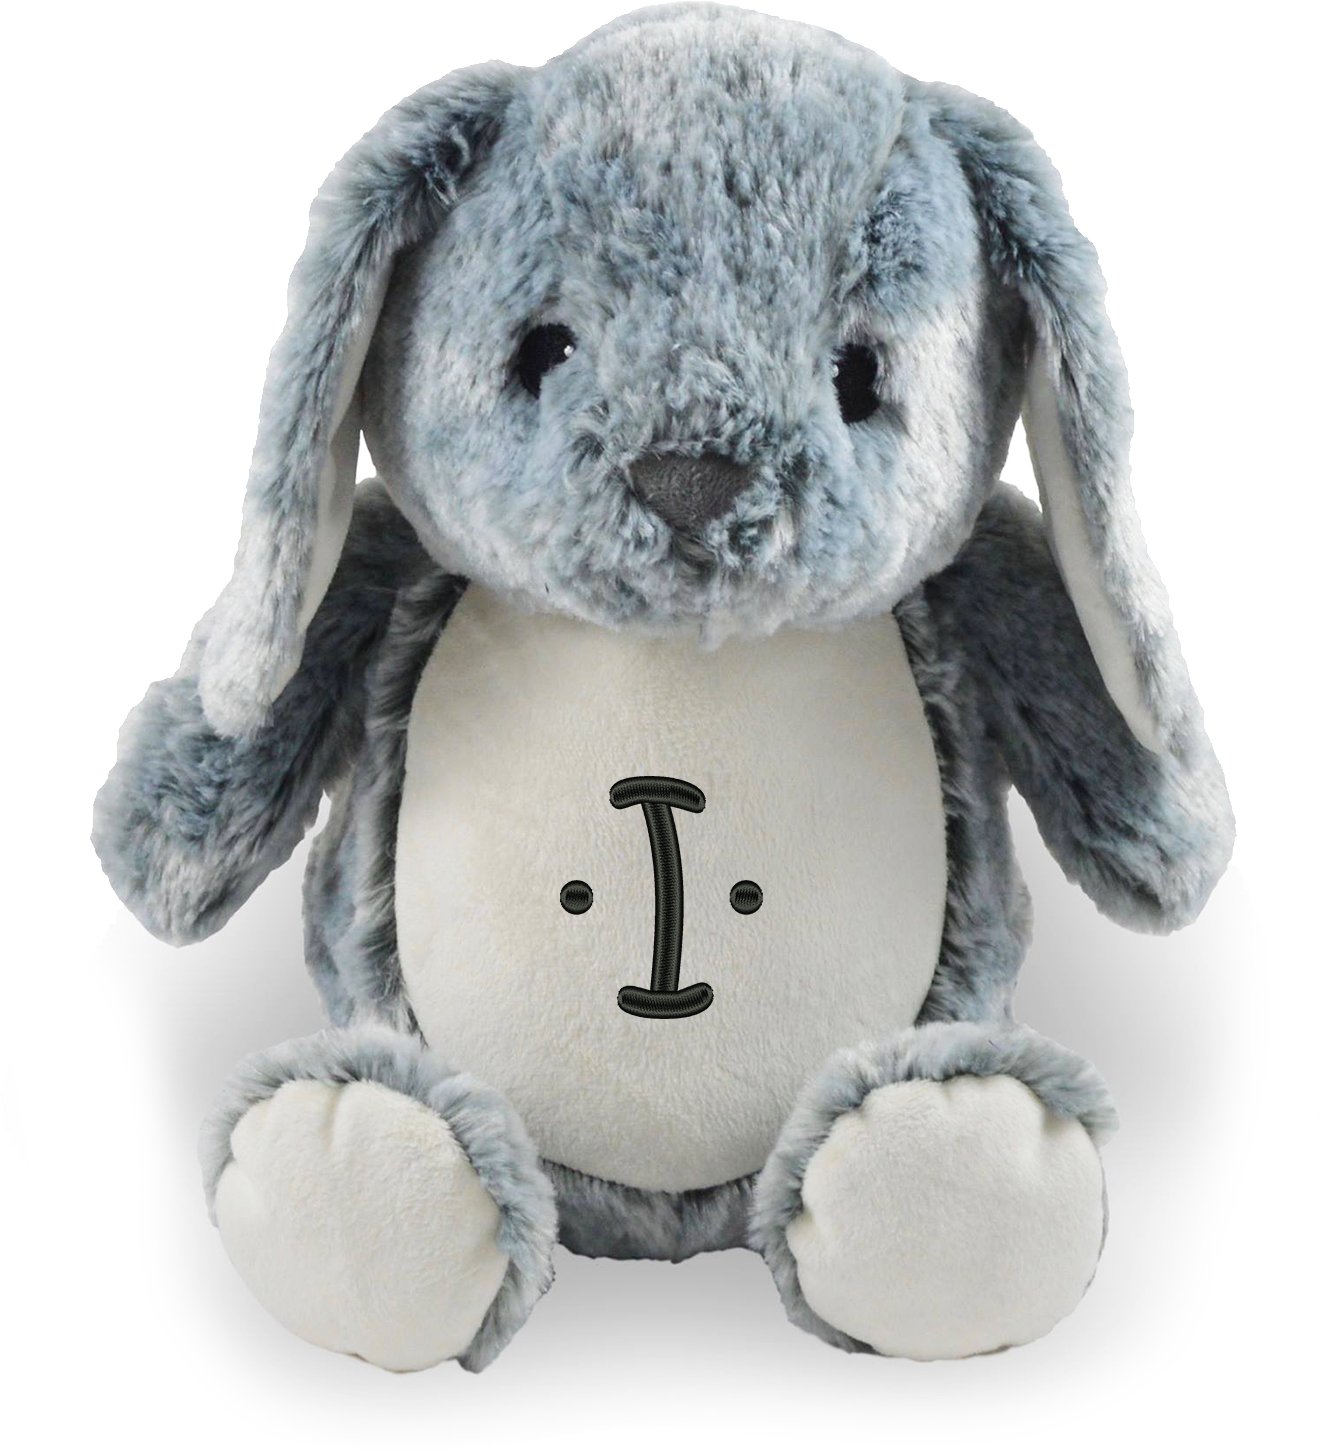 Personalized Stuffed Grey Bunny With Embroidered Letter Walmart Com